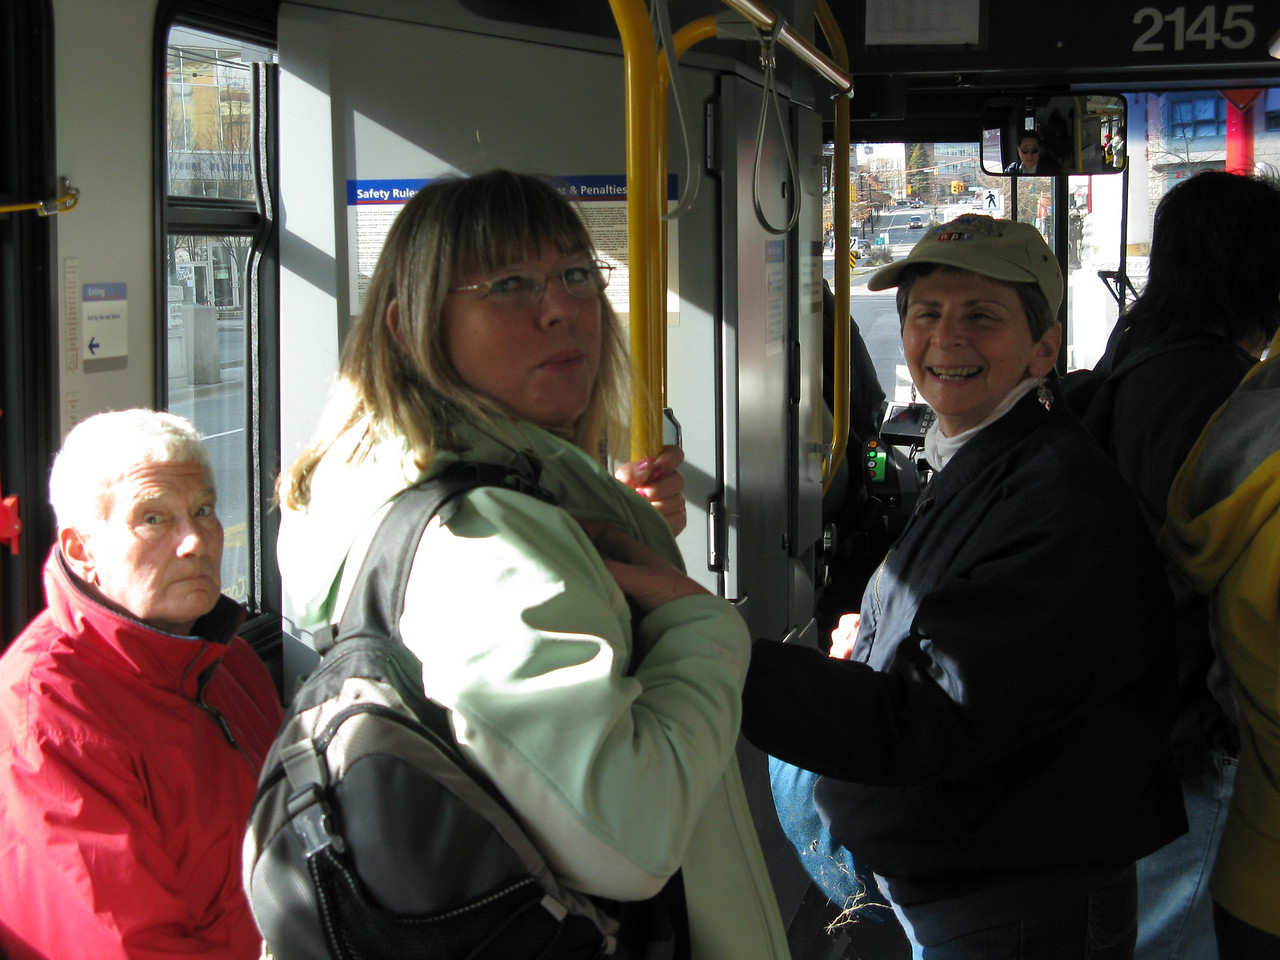 The bus was crowded on this Saturday afternoon.  (L to R) Carole and Sherry.  (The guy in the red jacket is a bystander.)